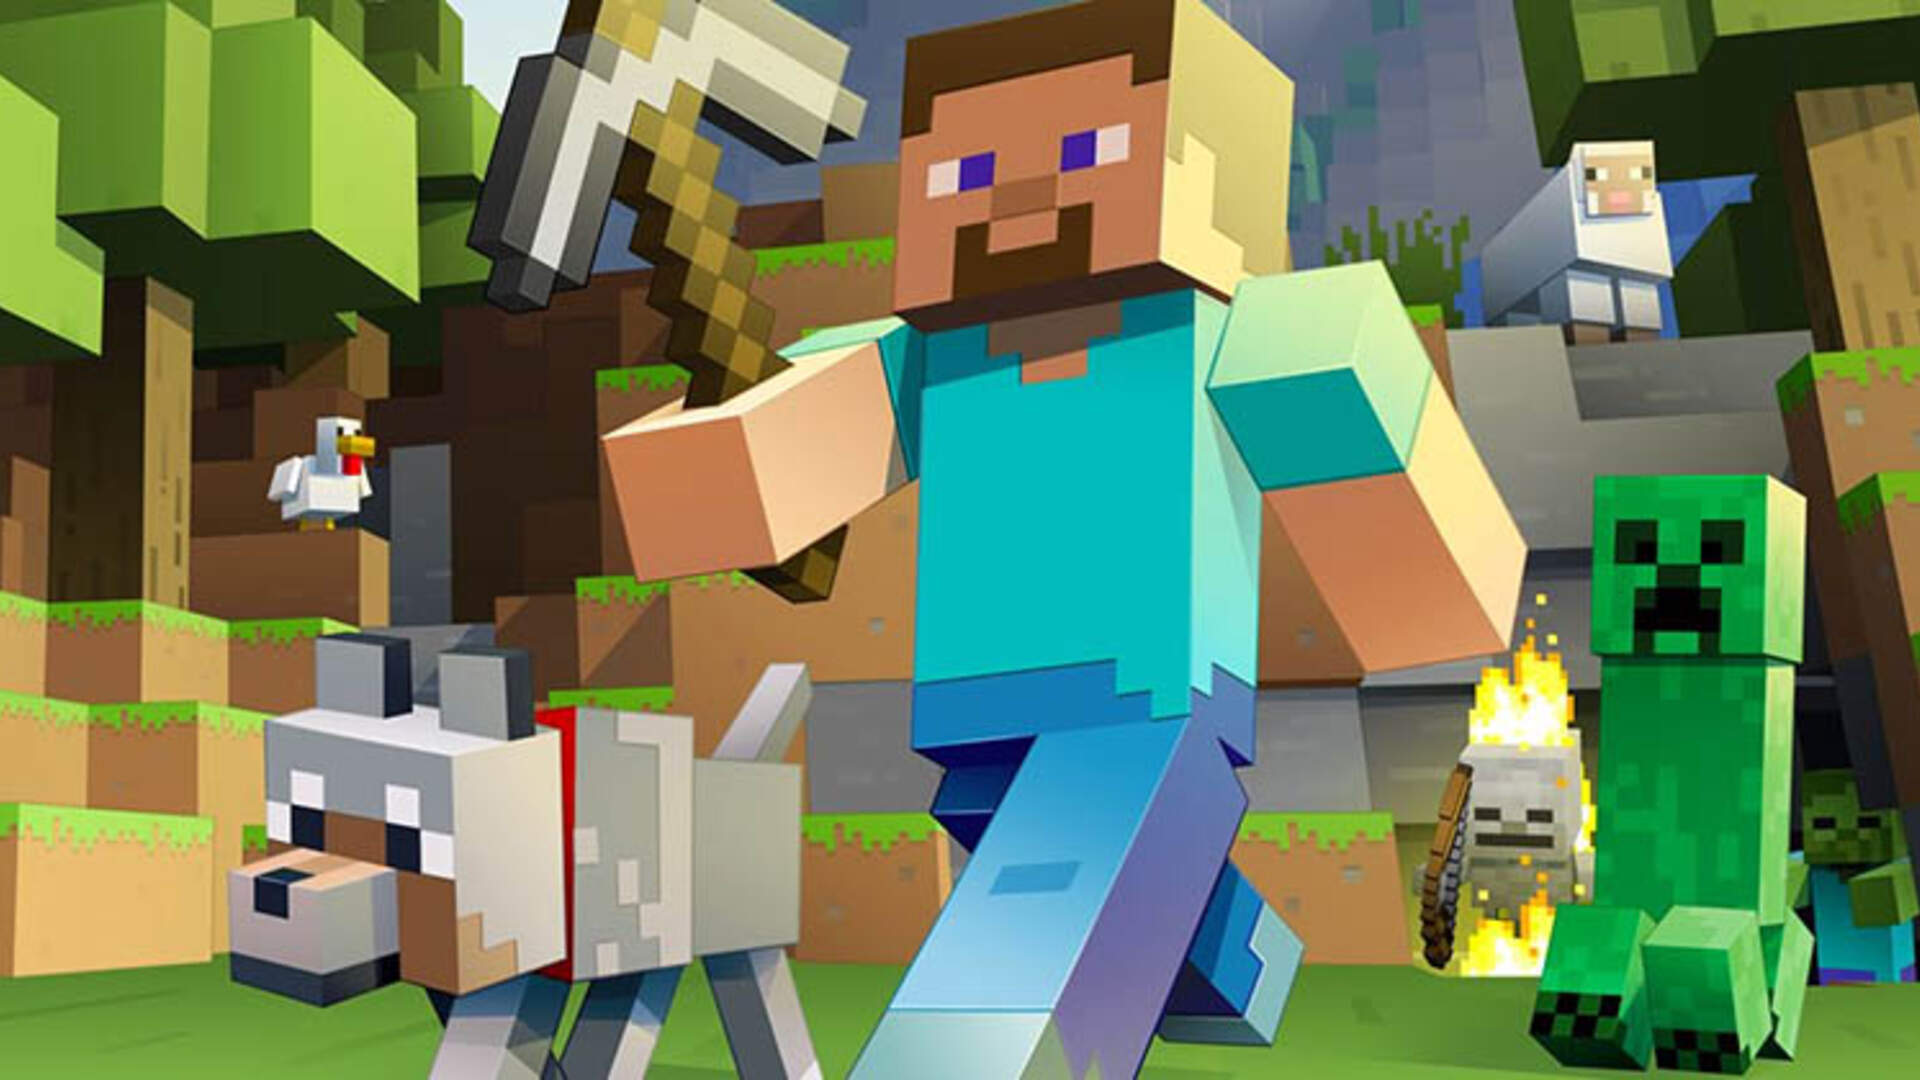 Bedrock Update Transforms Minecraft From a Video Game Into a Massive Creative Platform, Adds 4K Texture Update